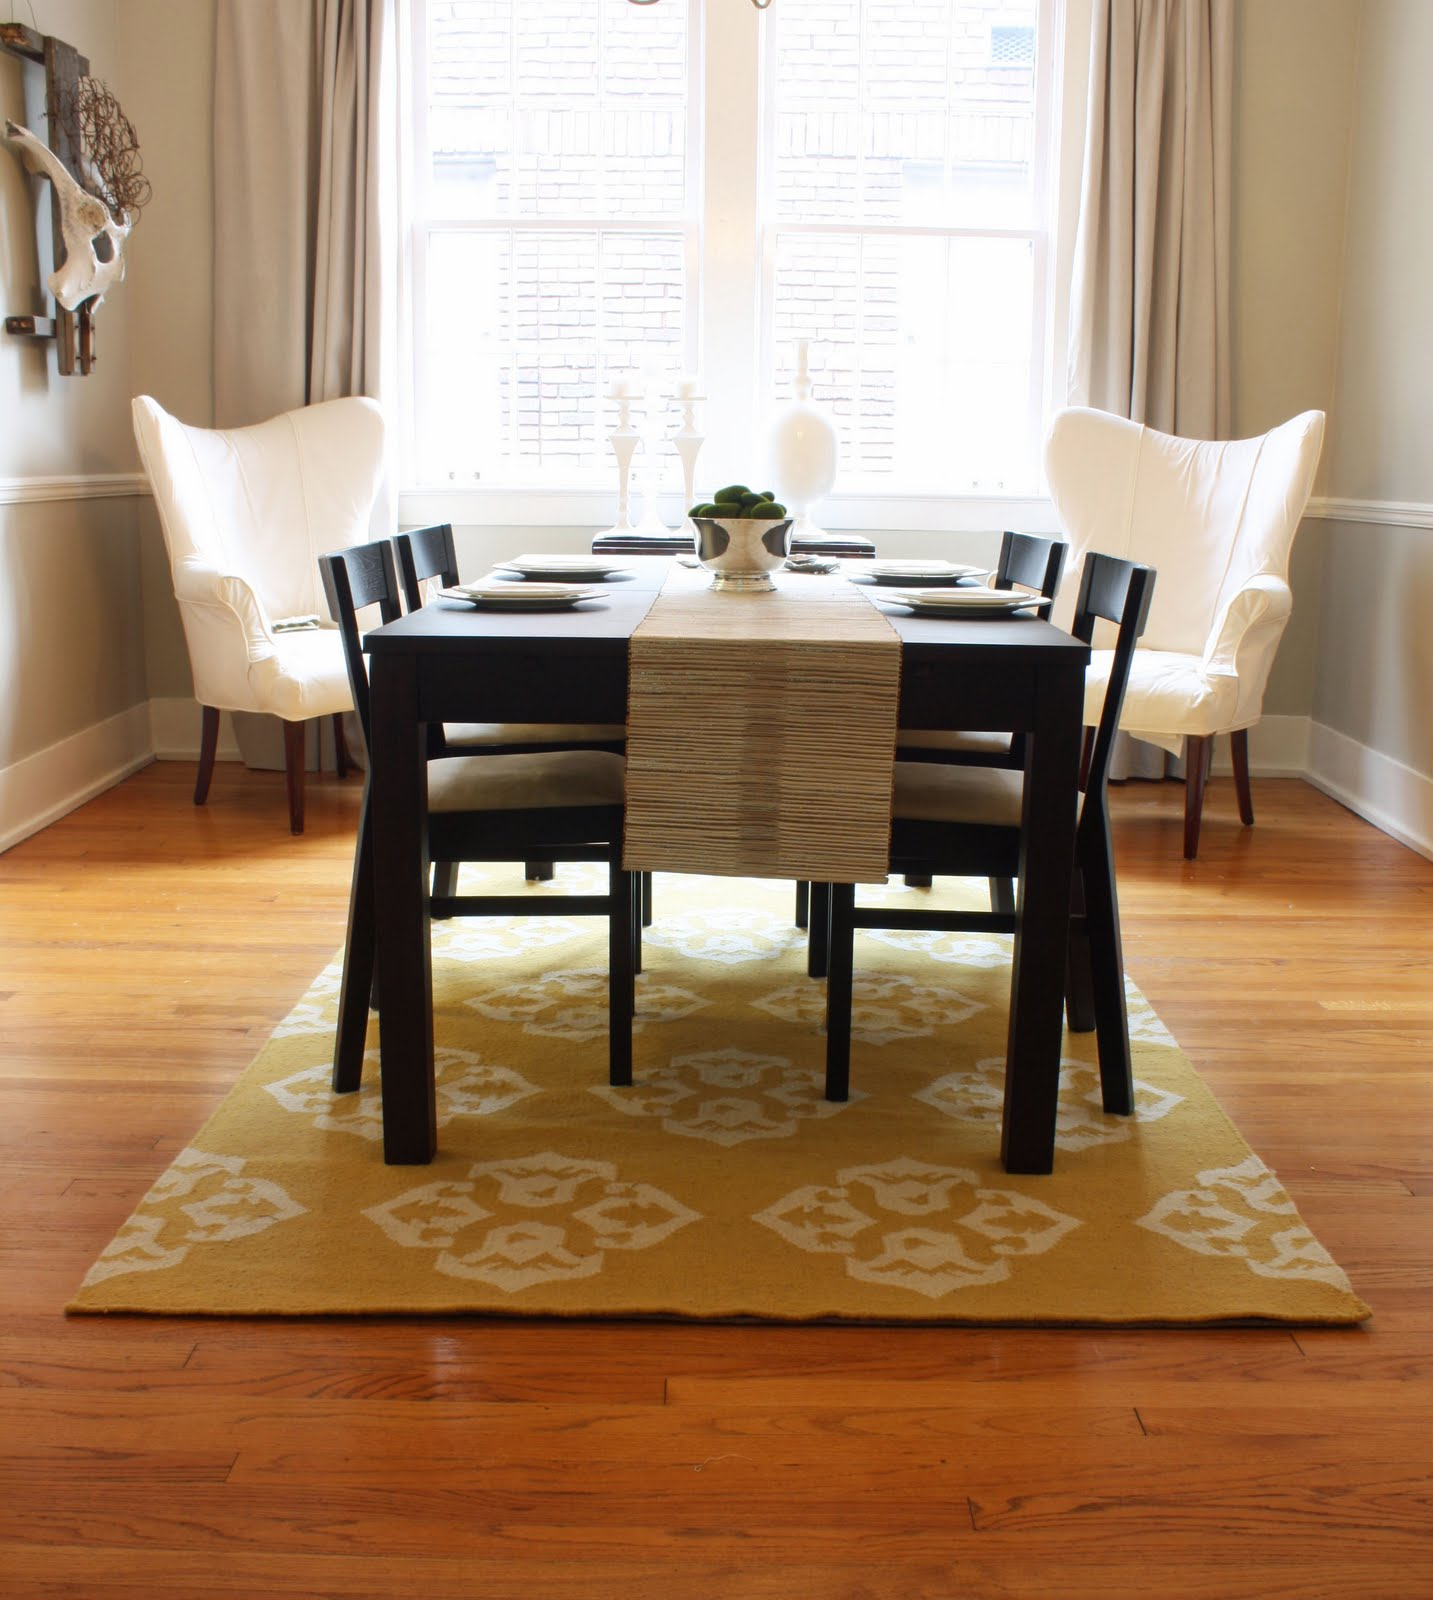 dwell and tell: Dining Room Updates